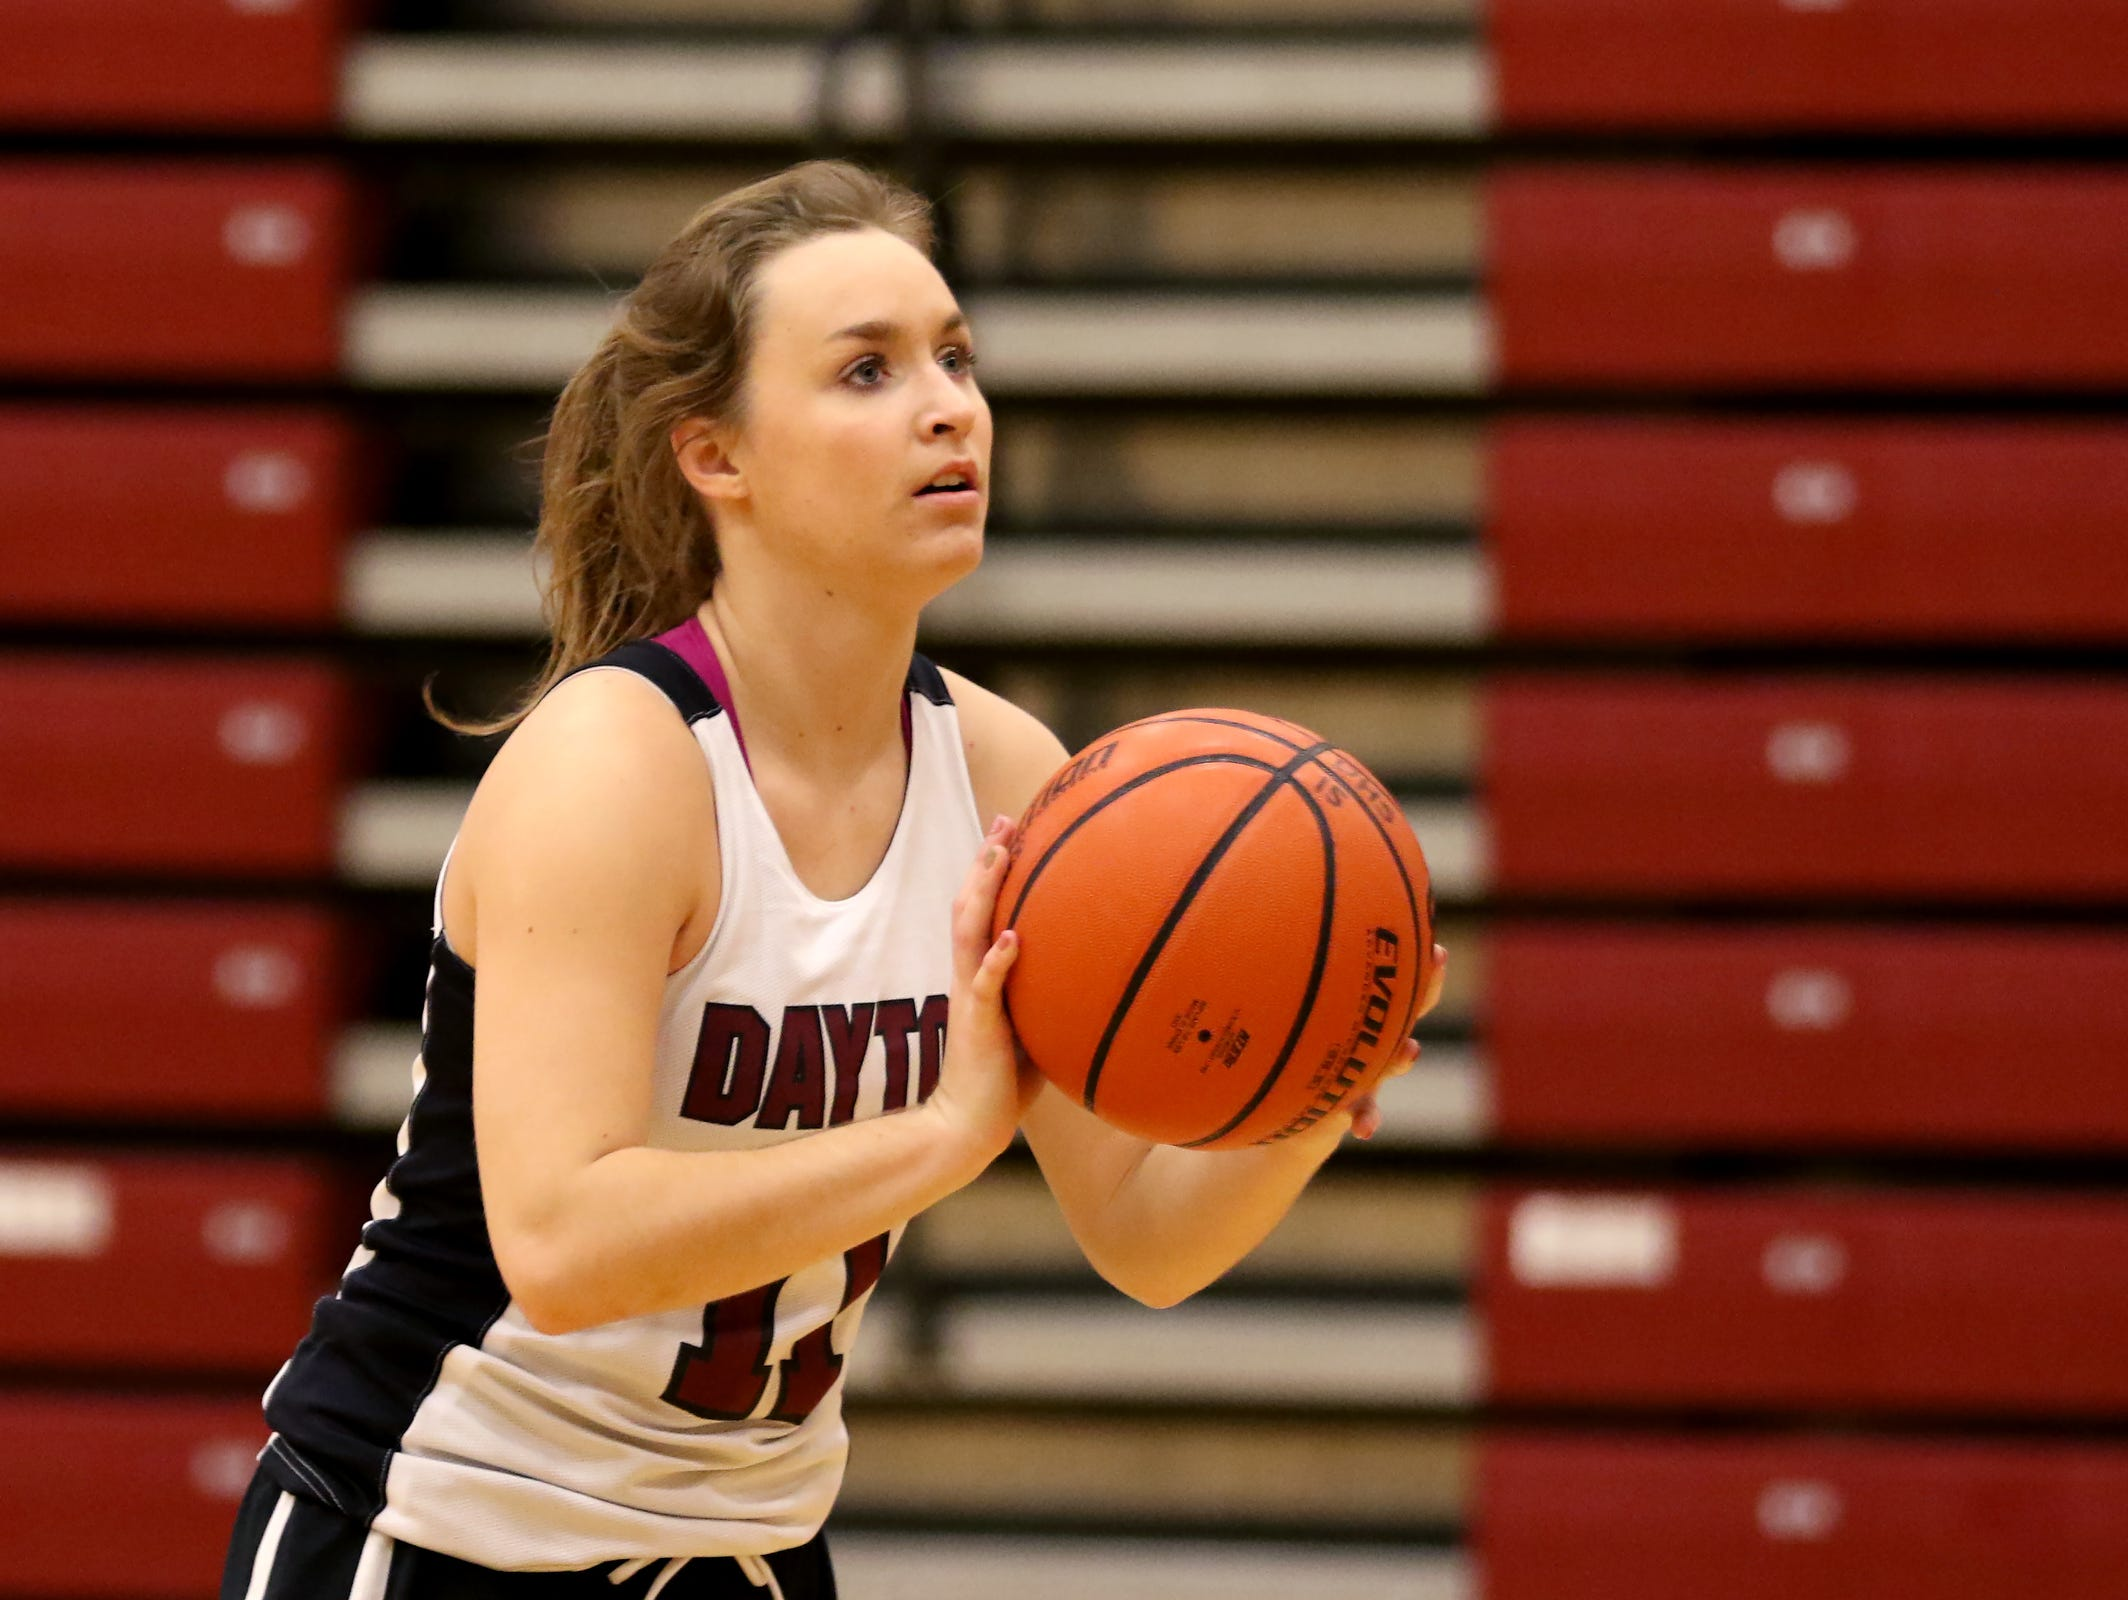 Junior Shawnie Spink leads the Dayton High School girl's basketball team. Photographed at Dayton High School on Tuesday, Nov. 22, 2016.